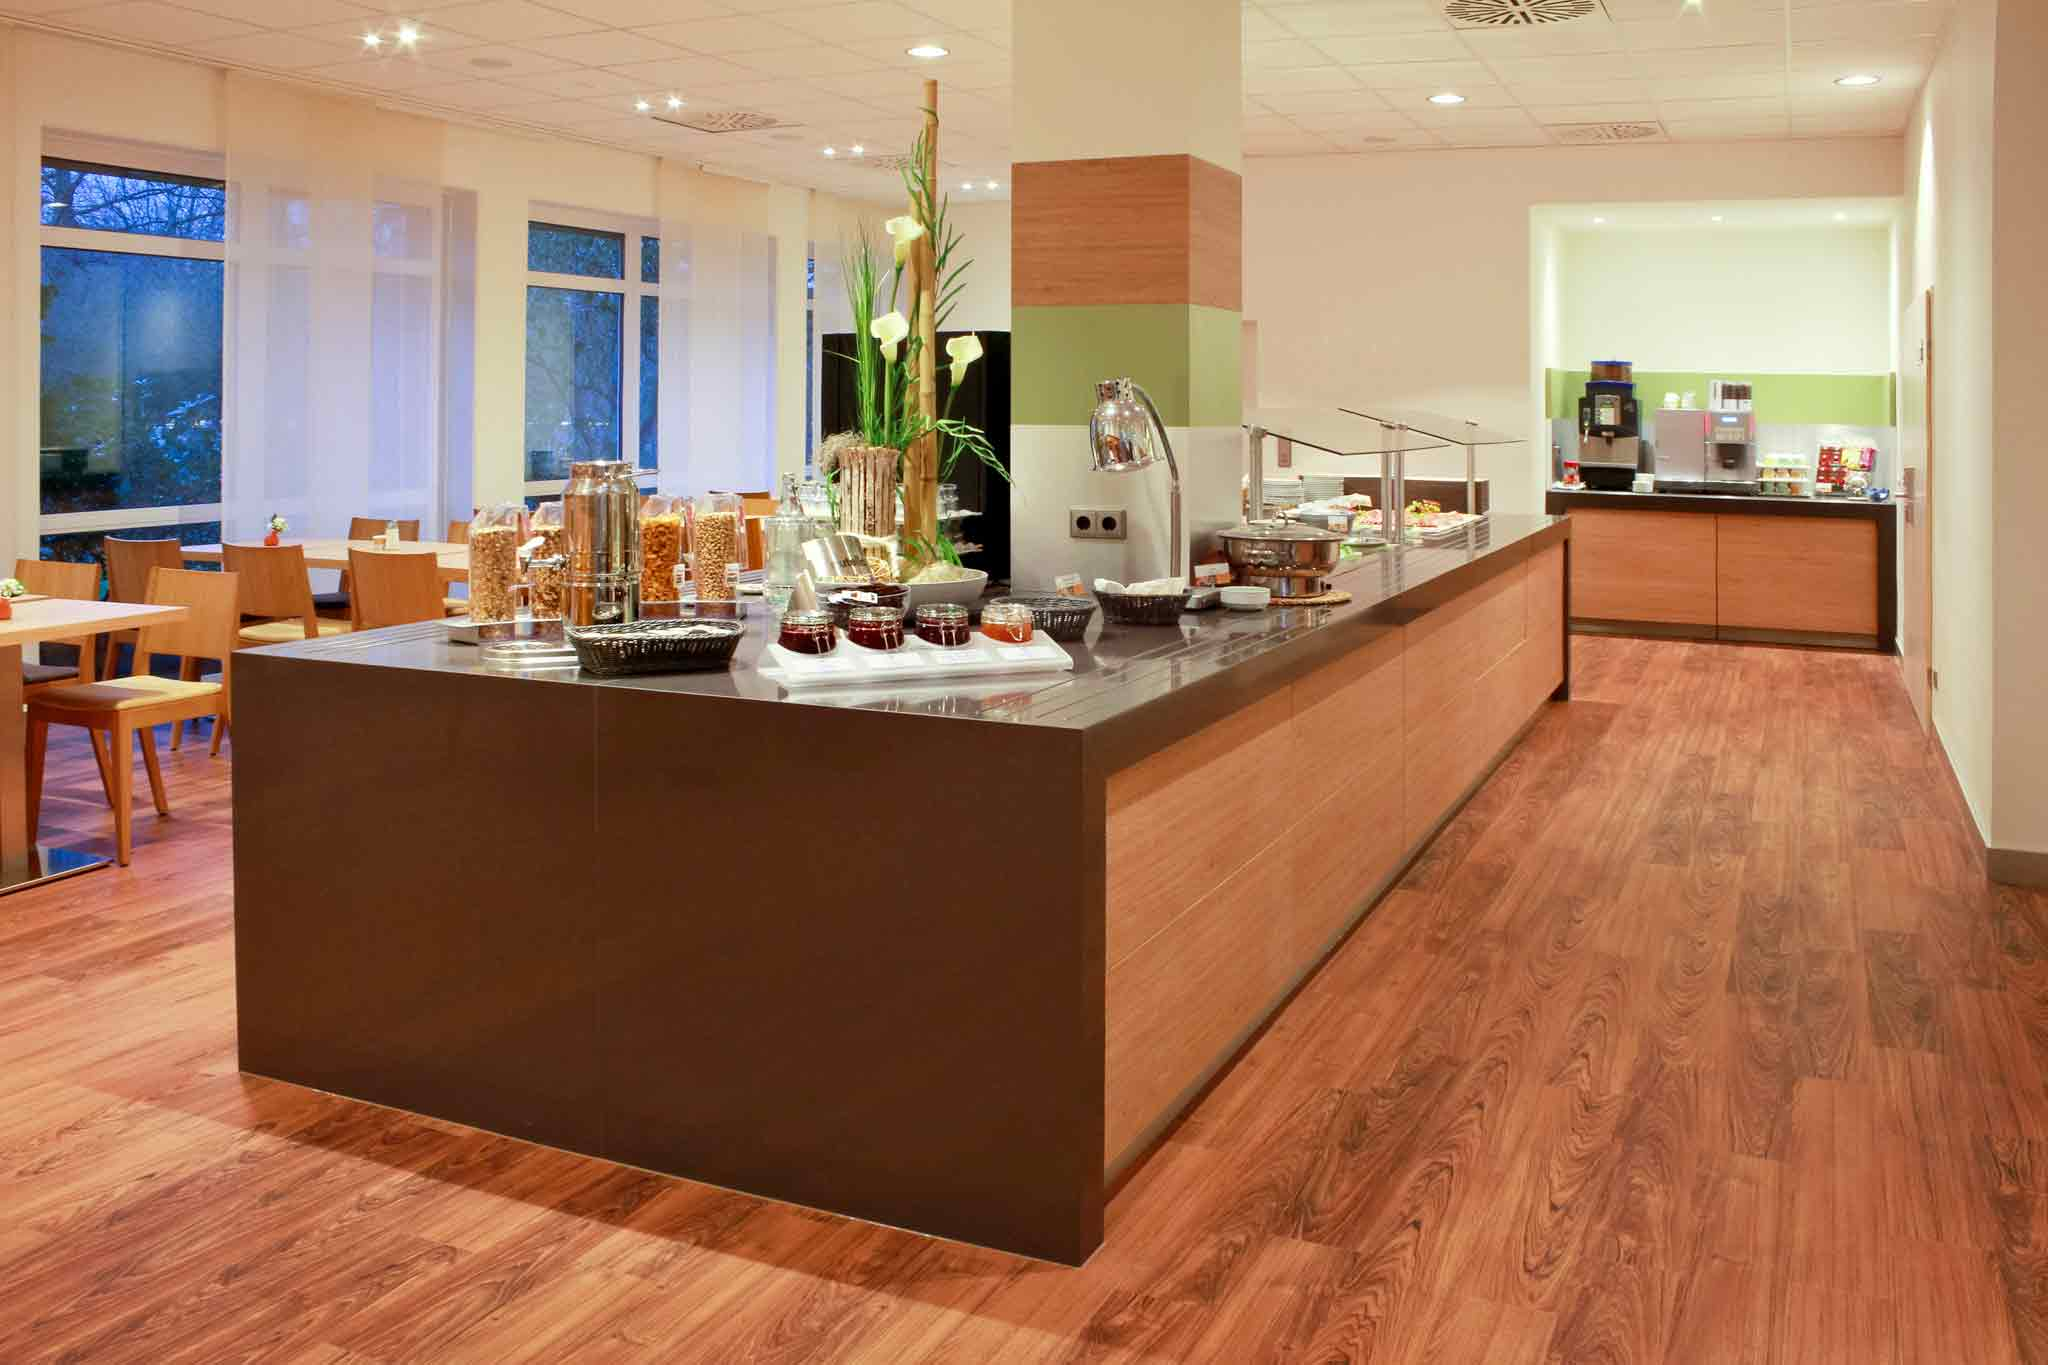 Ibis Hotel Hannover Medical Park 前厅